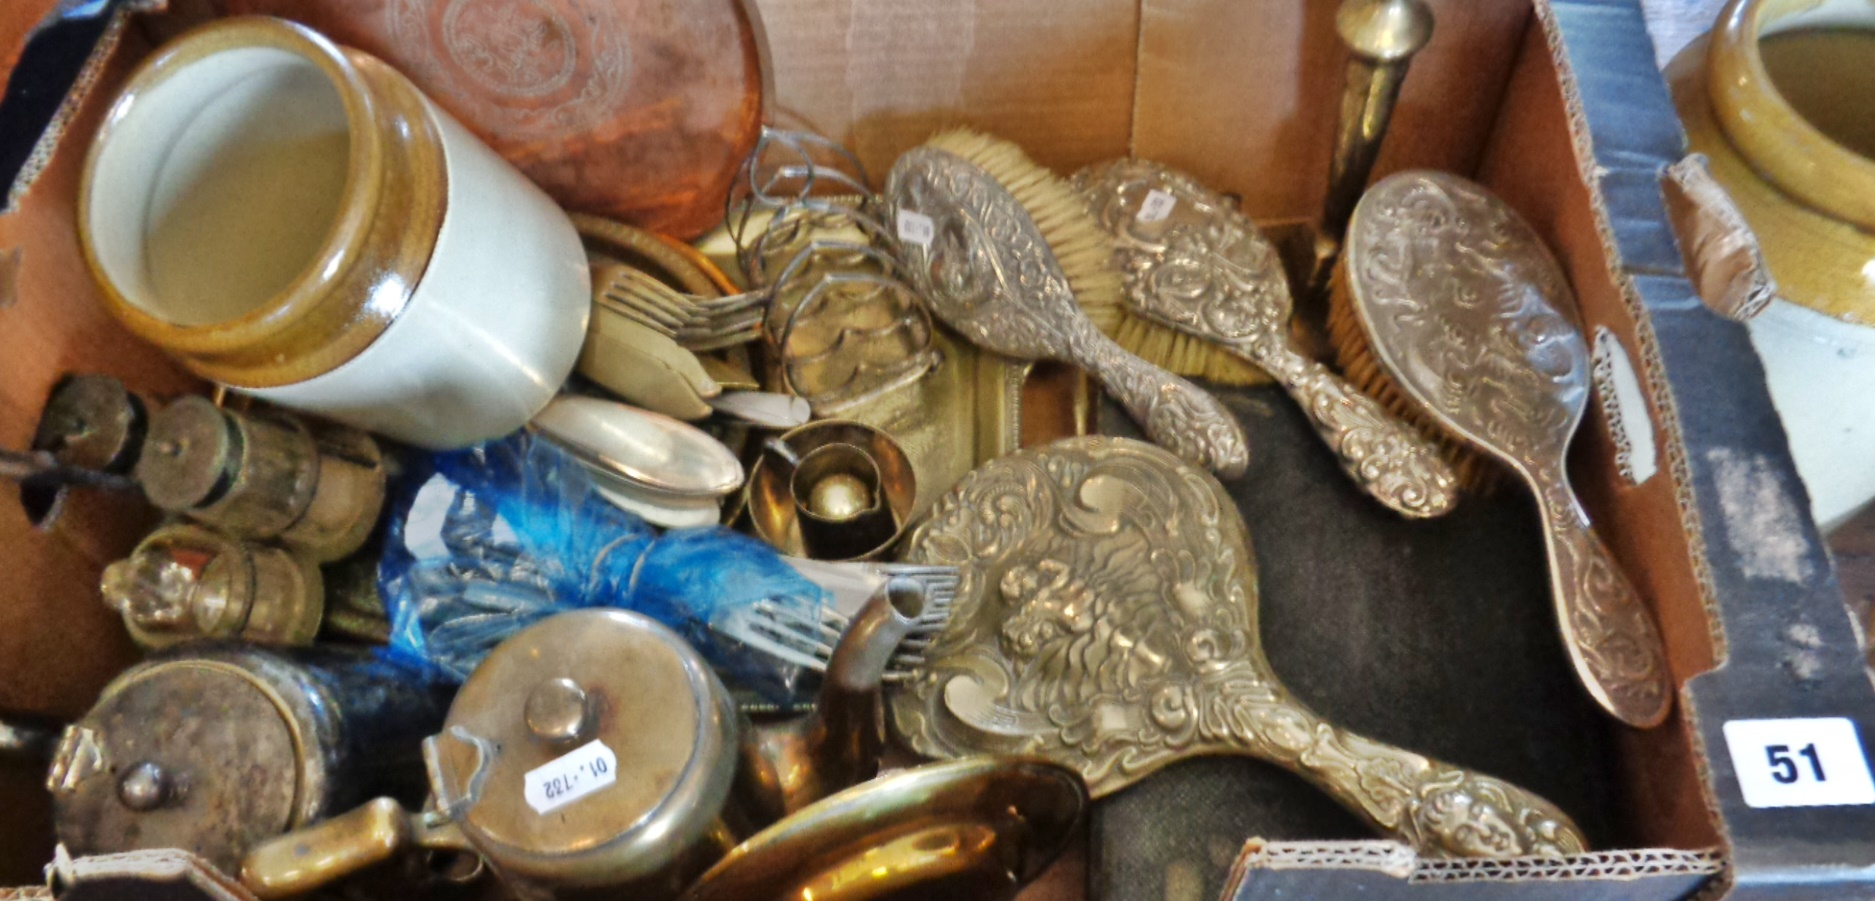 Lot 51 - Art Nouveau silver backed brushes and mirror, silver plated items, cutlery, cruet set, etc.